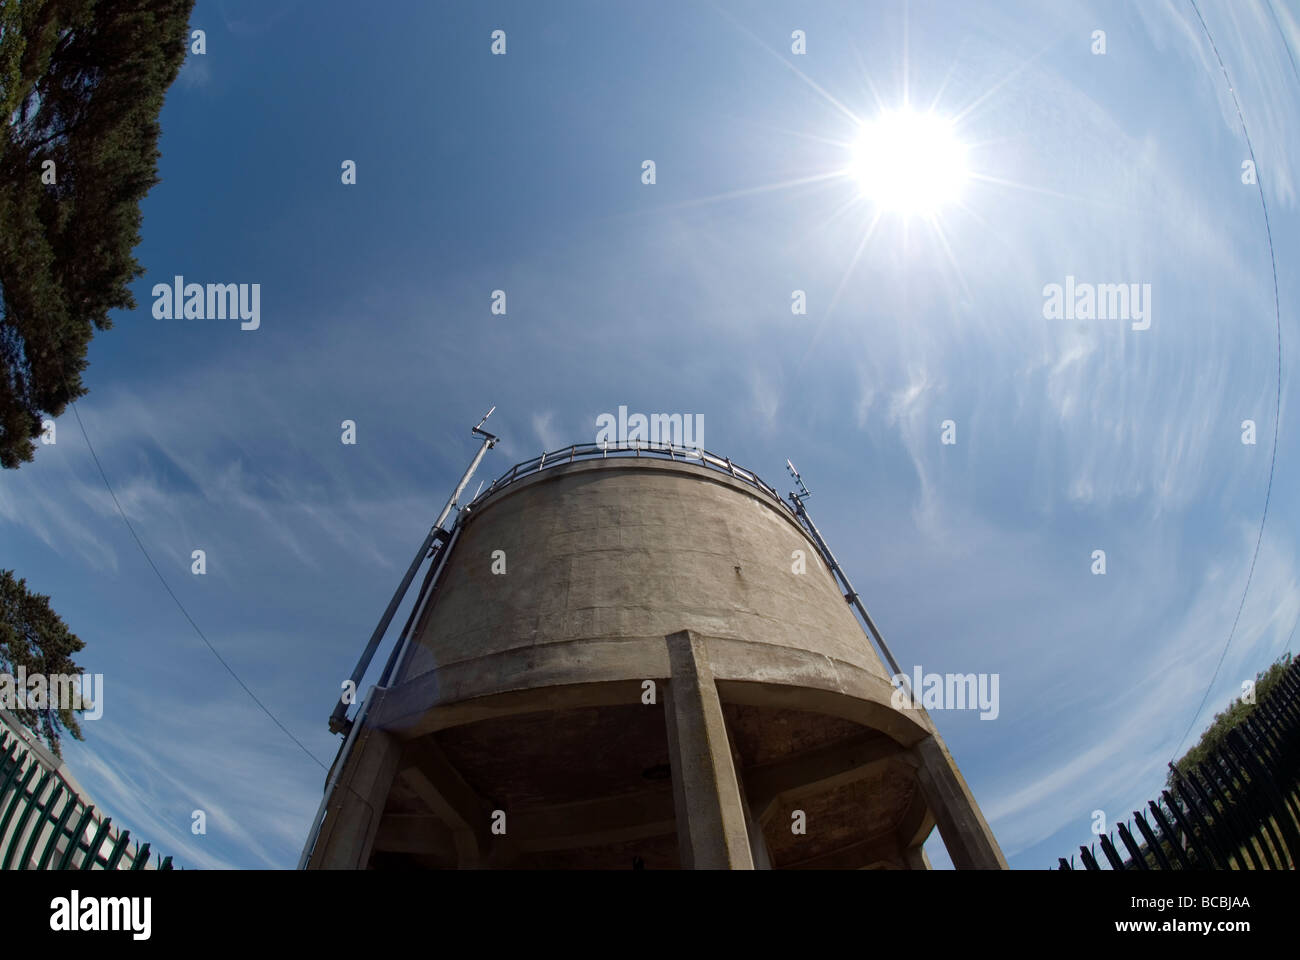 Old water tower with council houses at Butts Park,Newton Ferrers,South Devon, architecture, big, blue,city cloudy,construction - Stock Image